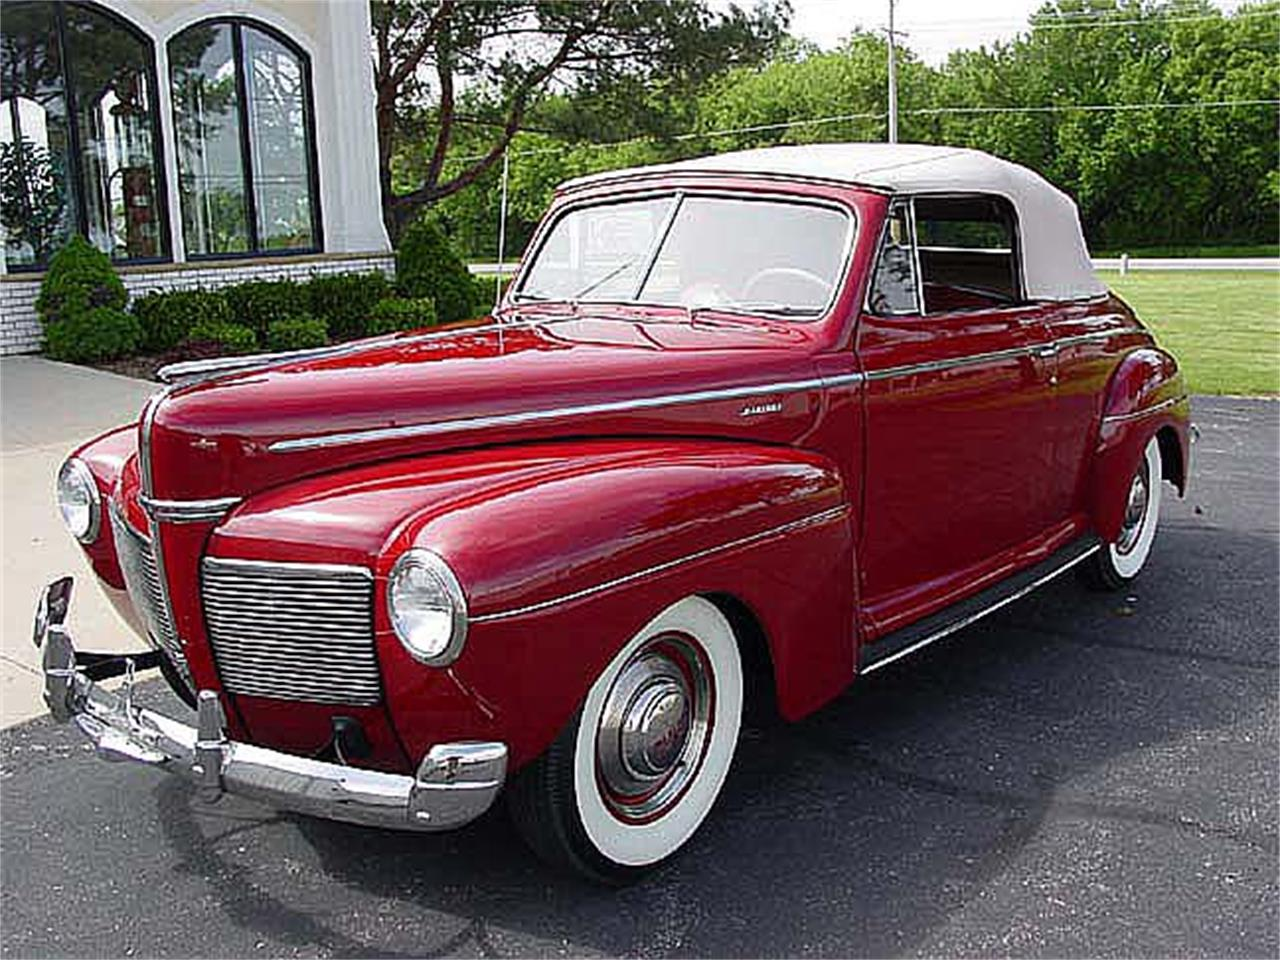 Large Picture of 1941 Mercury Convertible located in Minnesota - $65,000.00 Offered by a Private Seller - LV7A